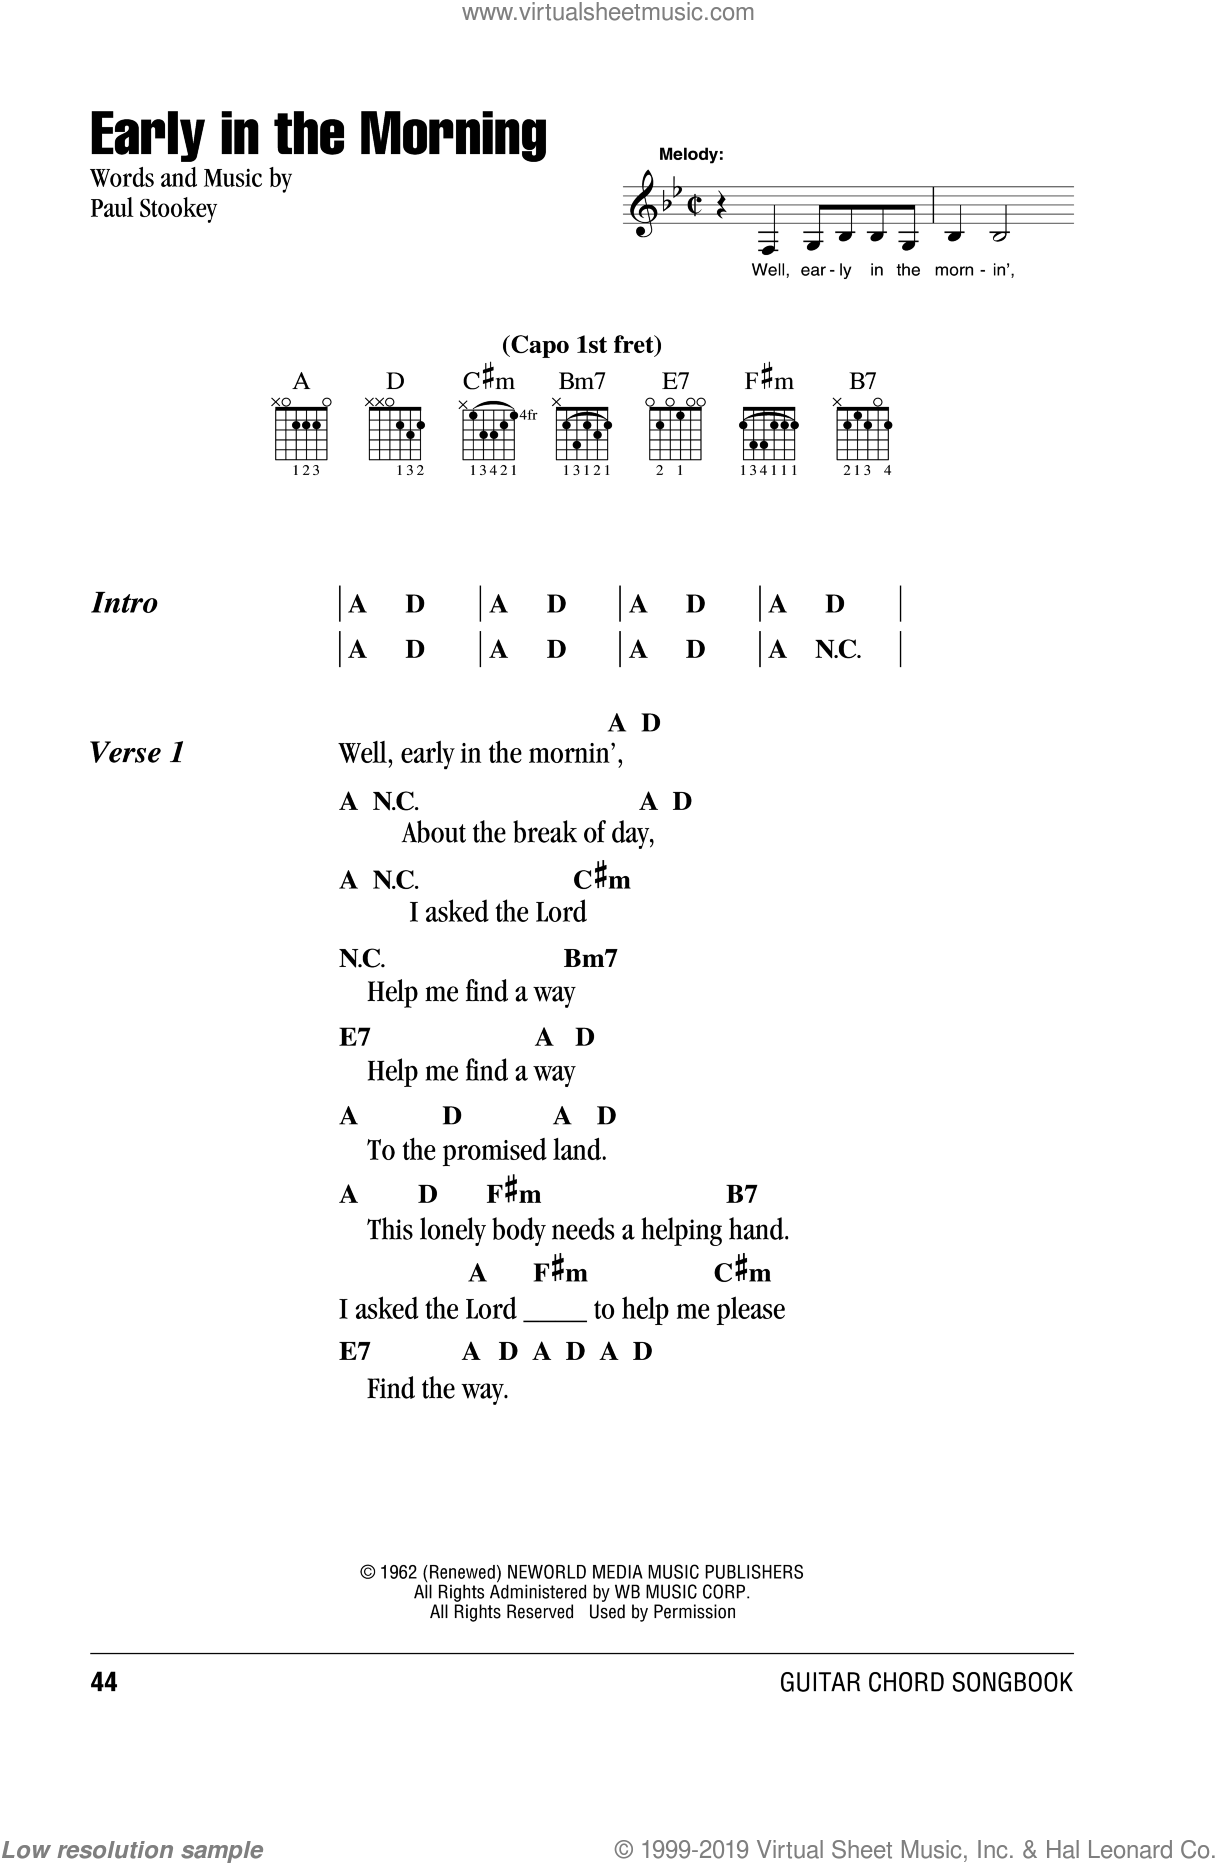 Early In The Morning sheet music for guitar (chords) by Peter, Paul & Mary, intermediate skill level